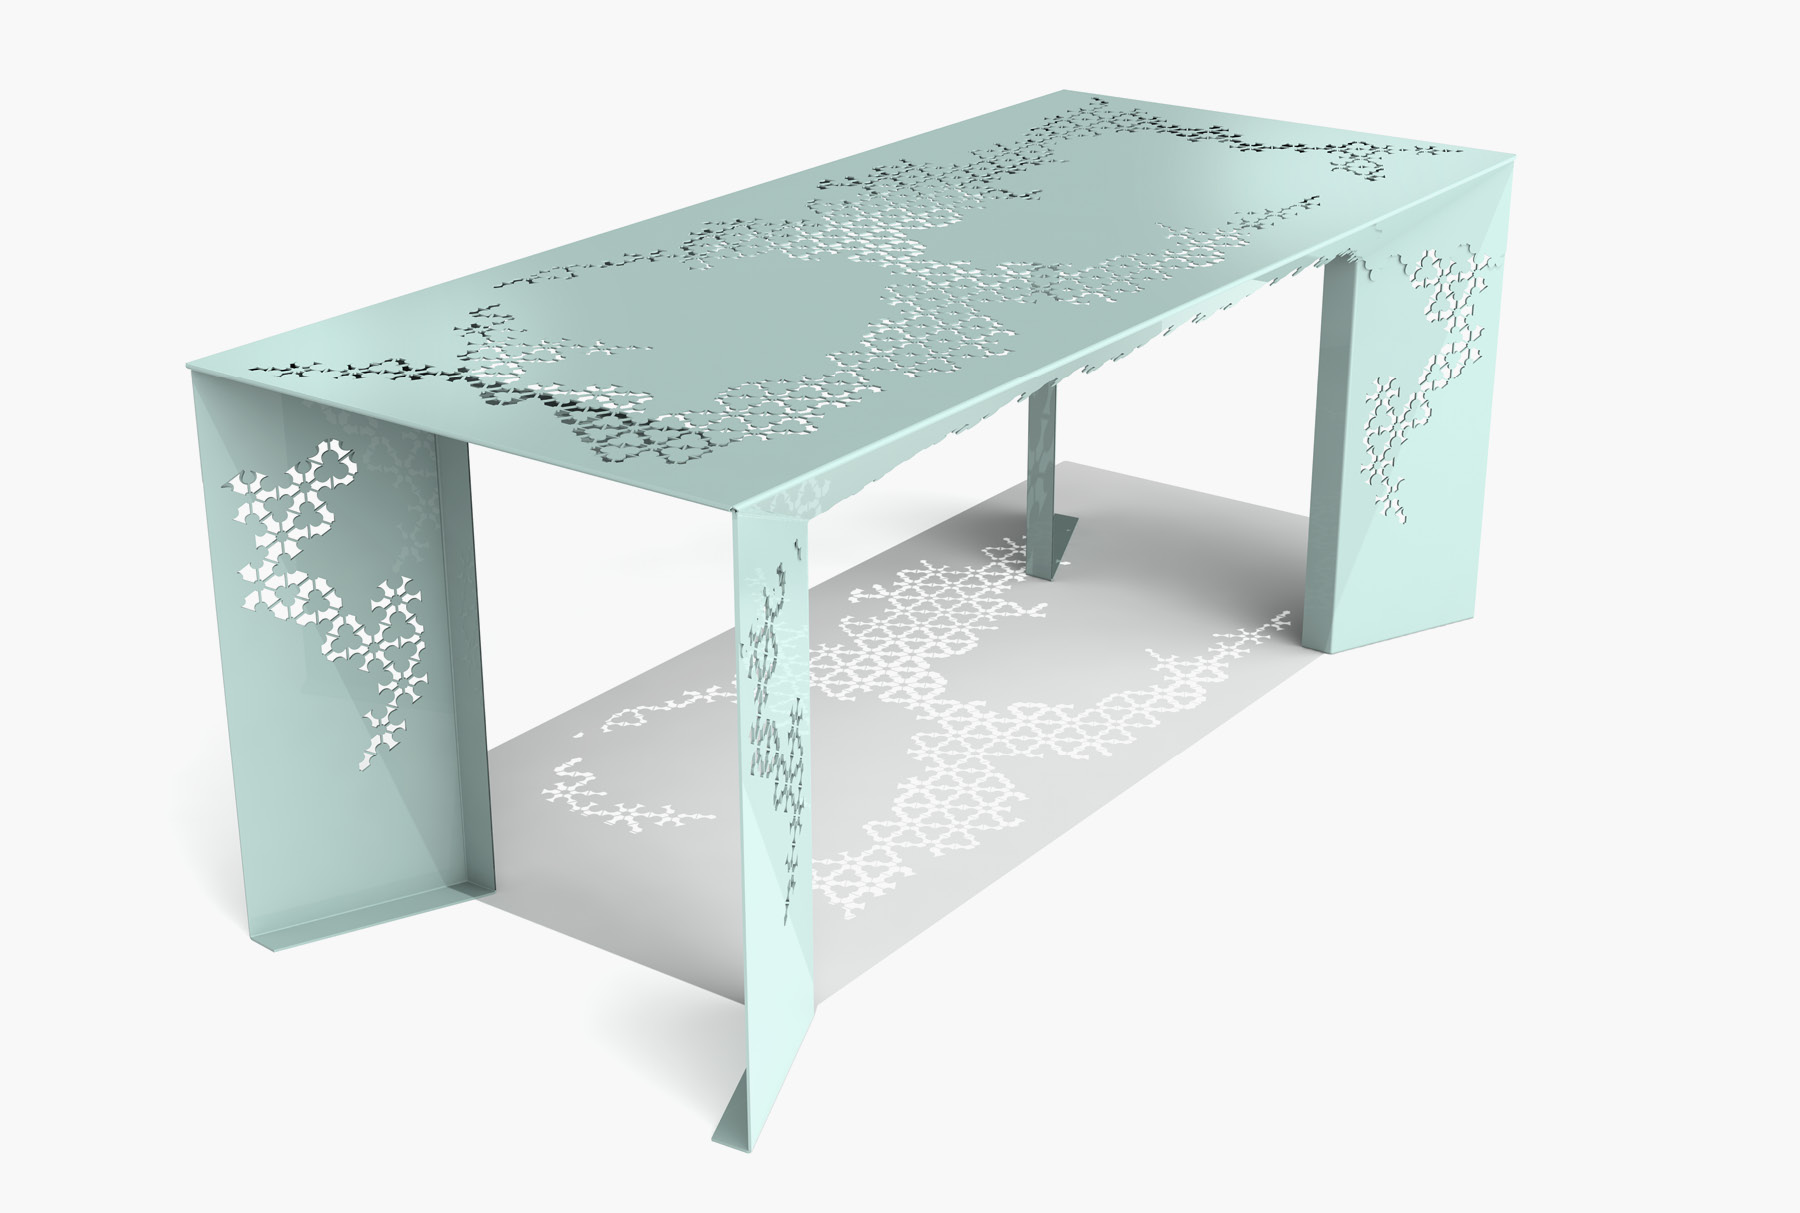 Powder Coated Steel Archives - Arktura - Ricami Dining